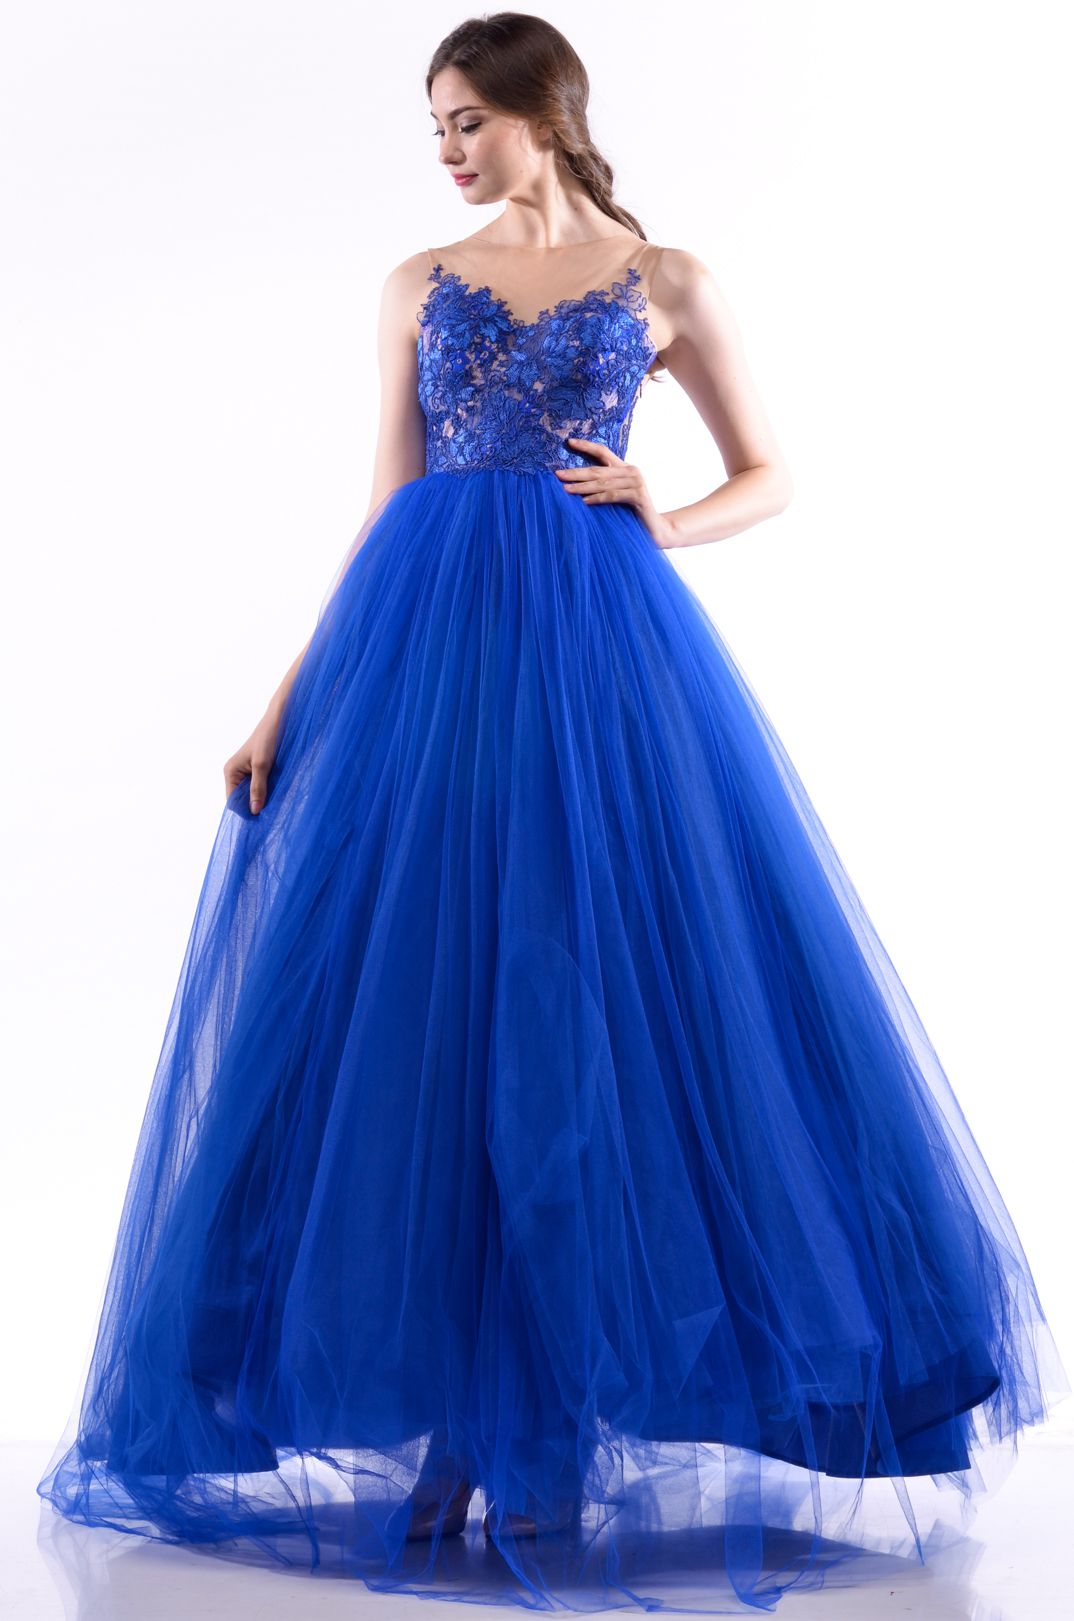 Dramatic Blue Gown